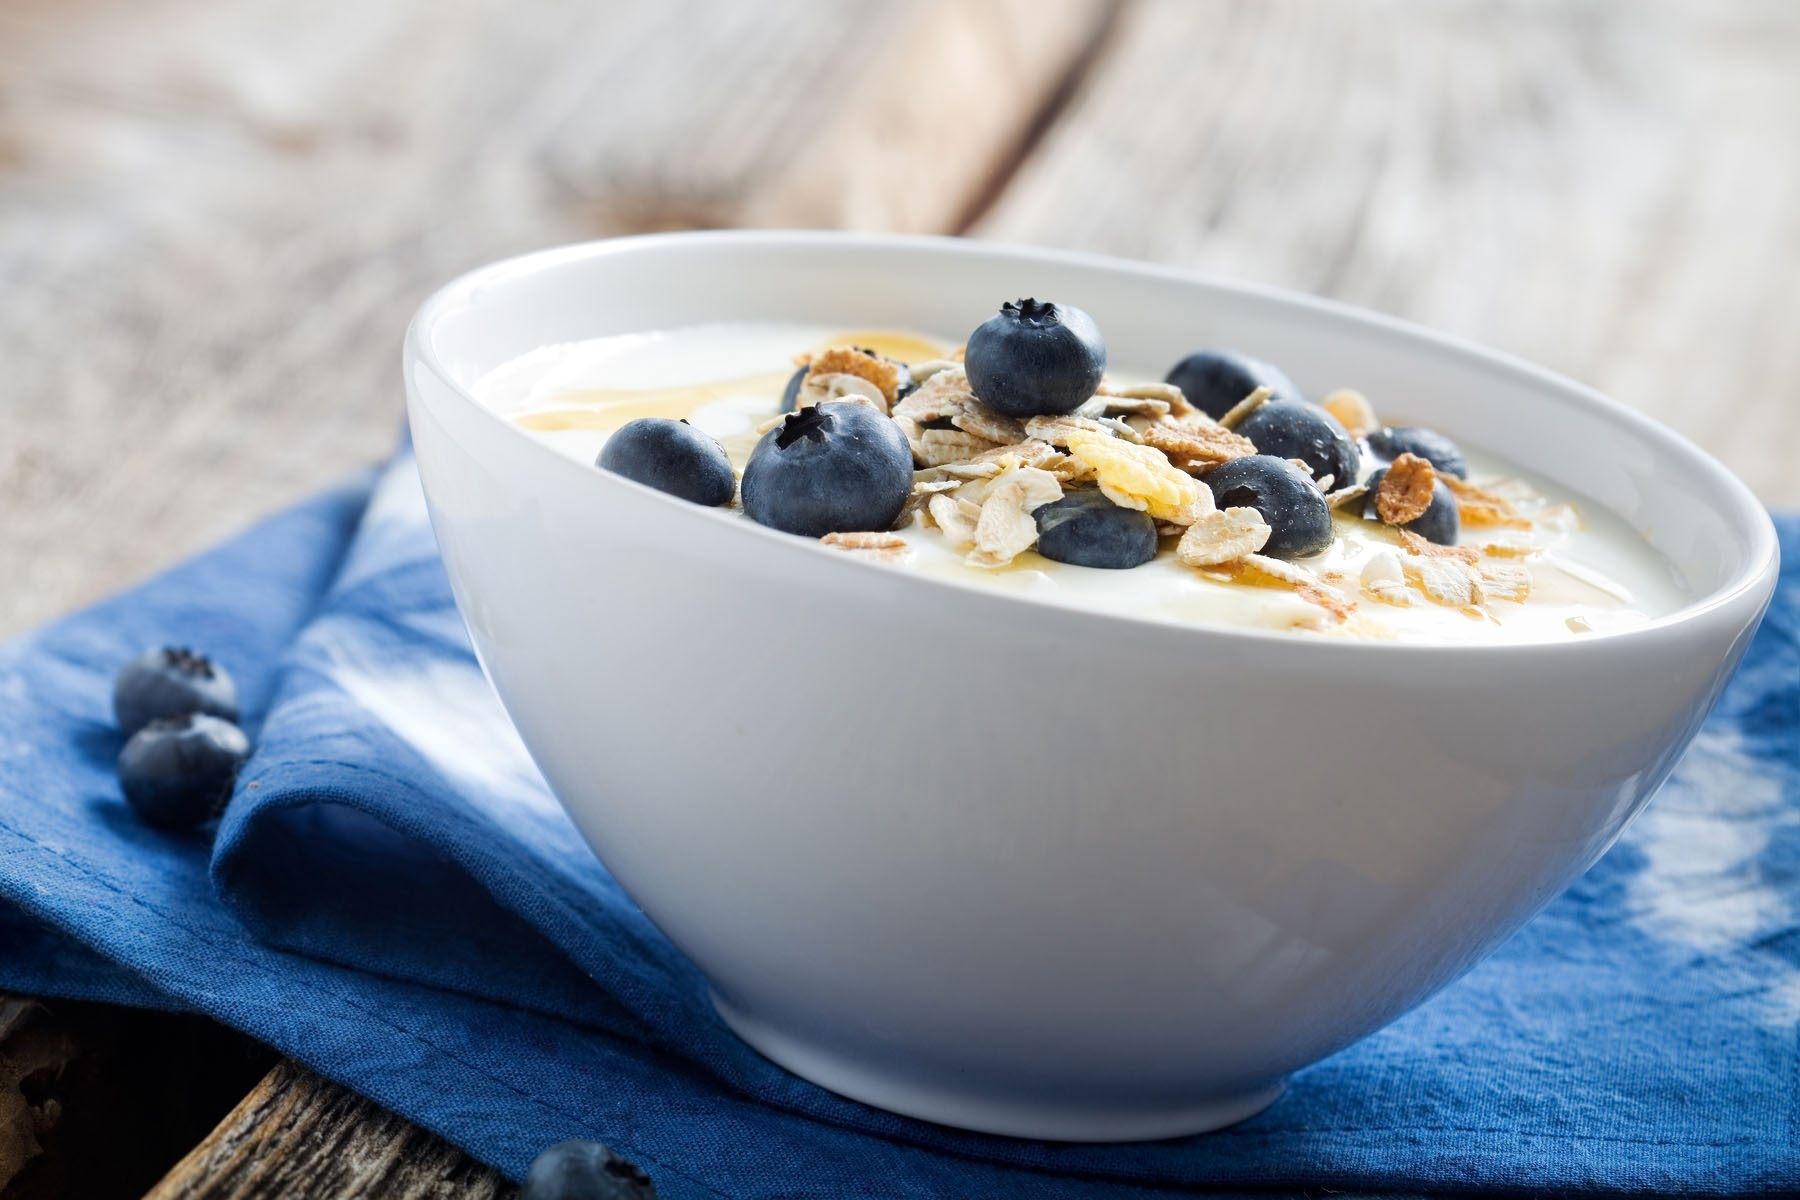 Dairy products like yogurt and milk boast healthy doses of calcium, and research suggests being calcium-deficient may make it difficult to sleep.